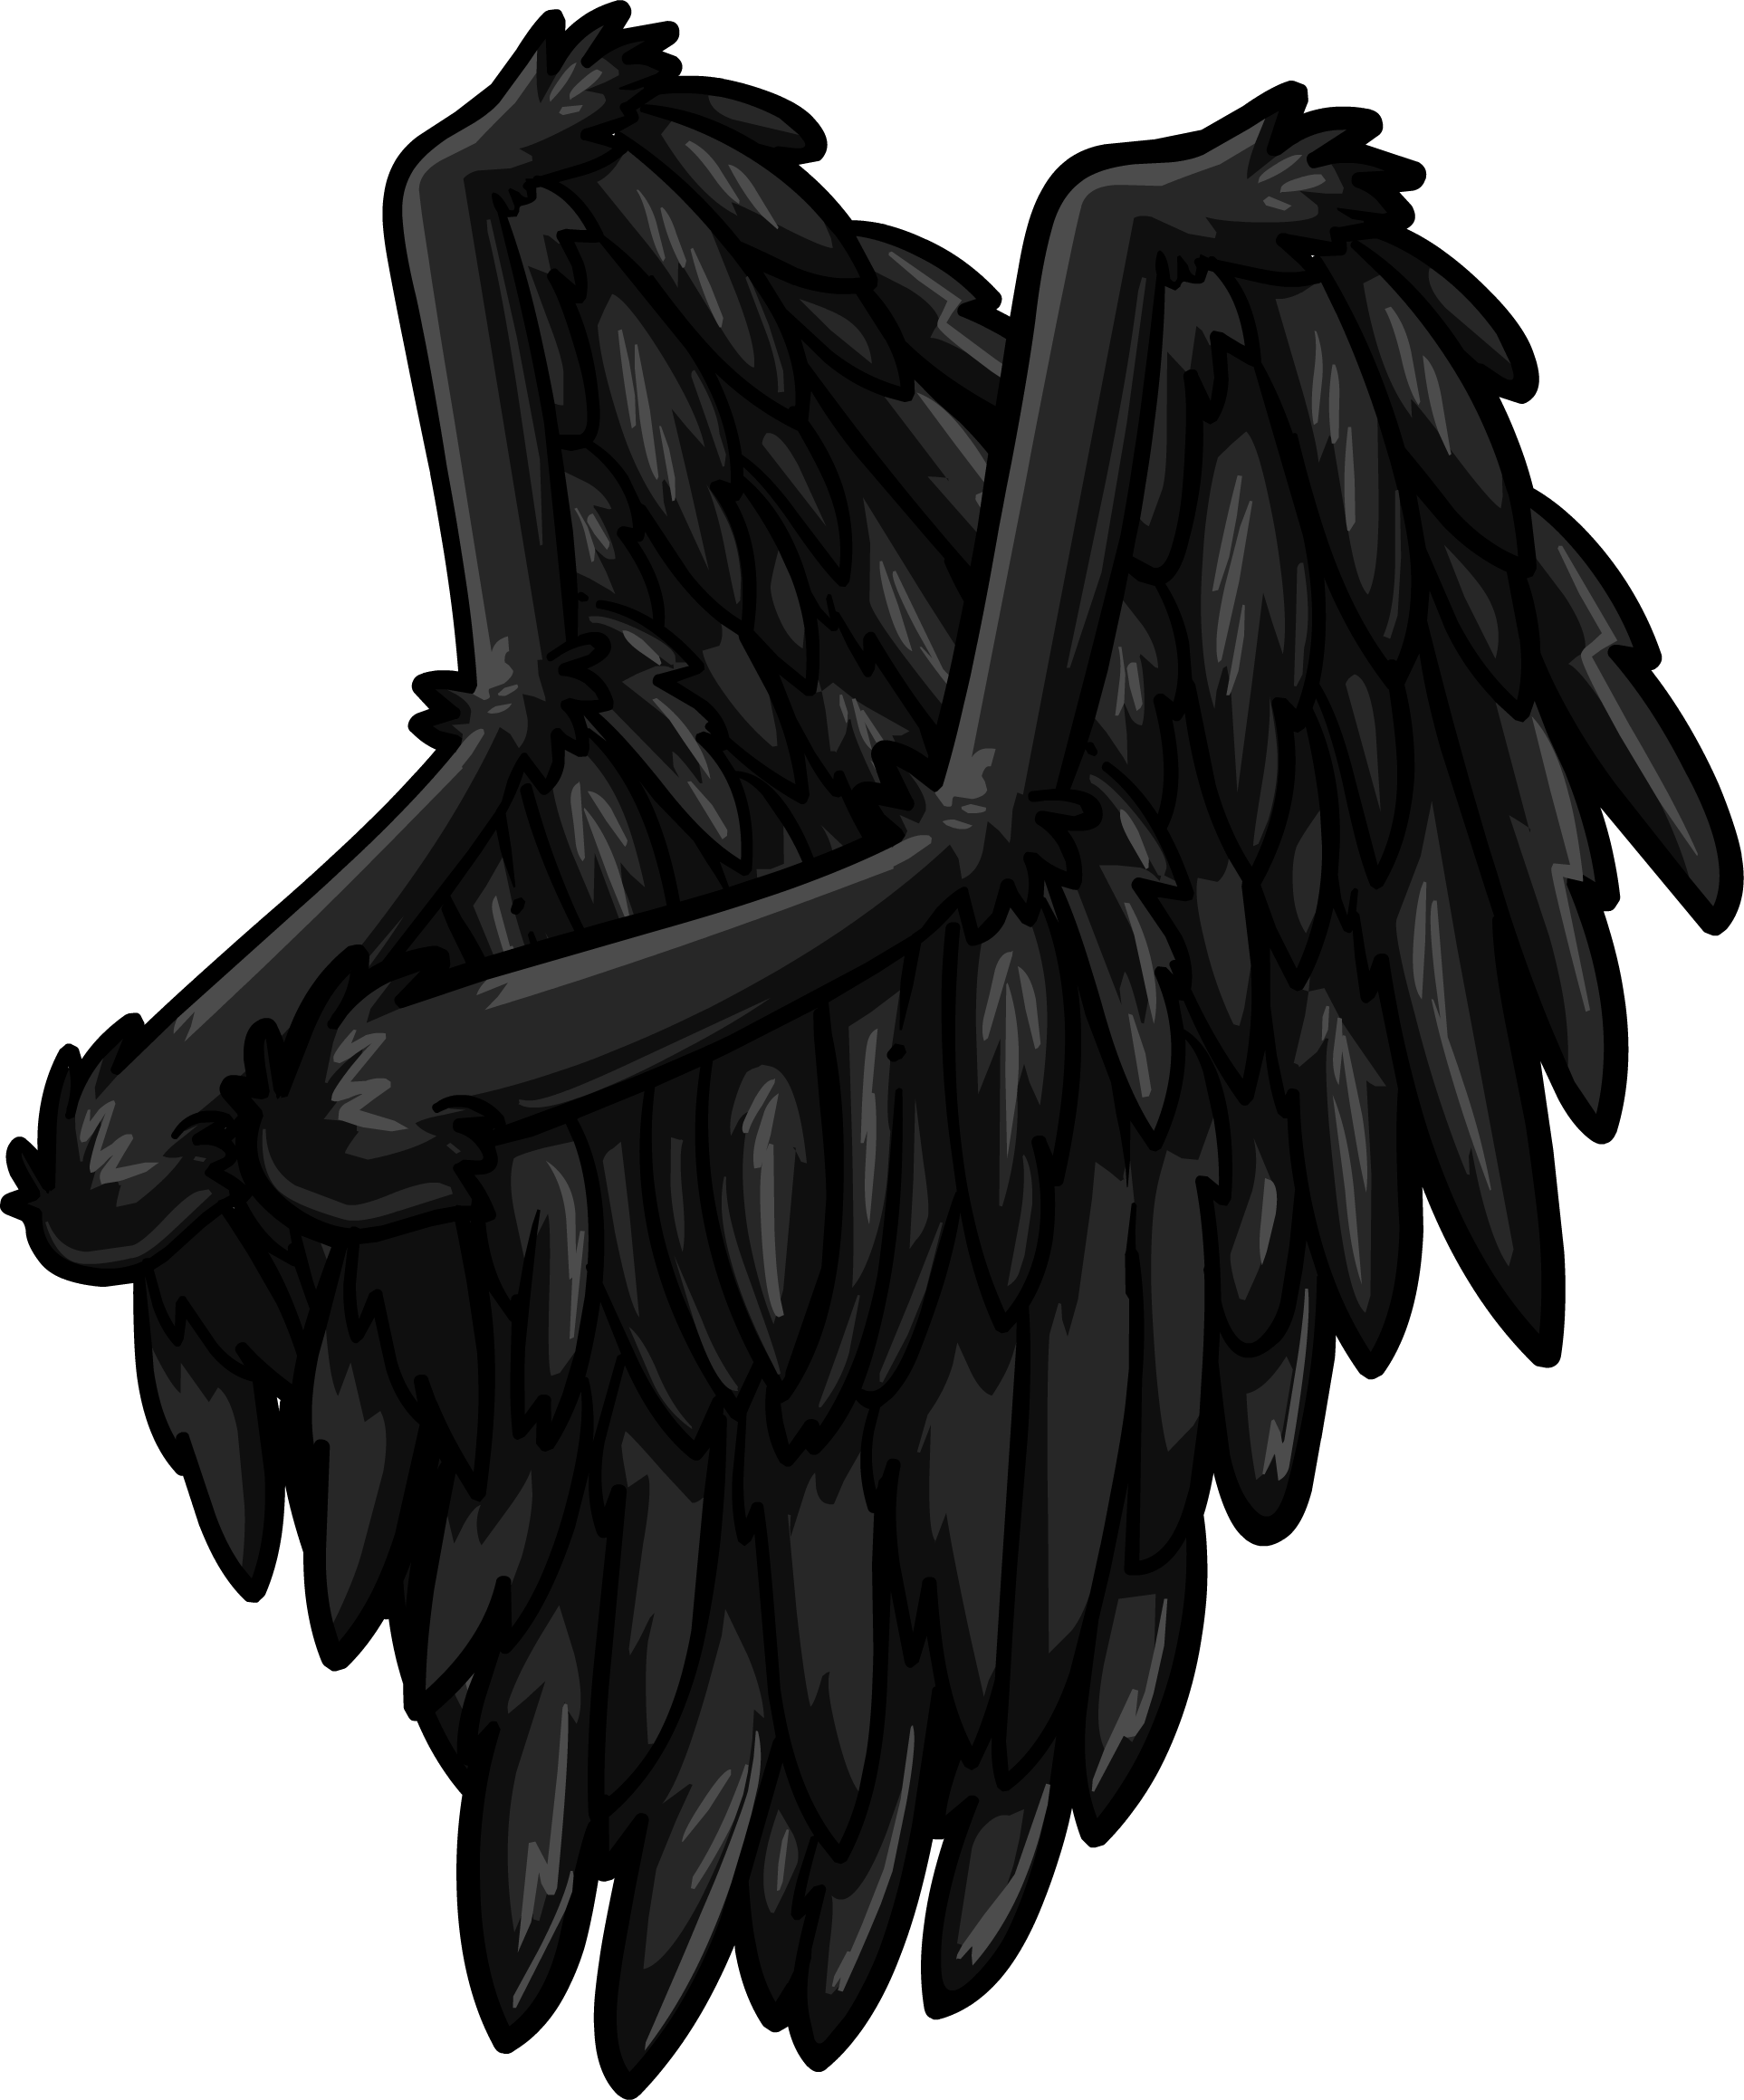 Drawing raven wing. Image wings png club